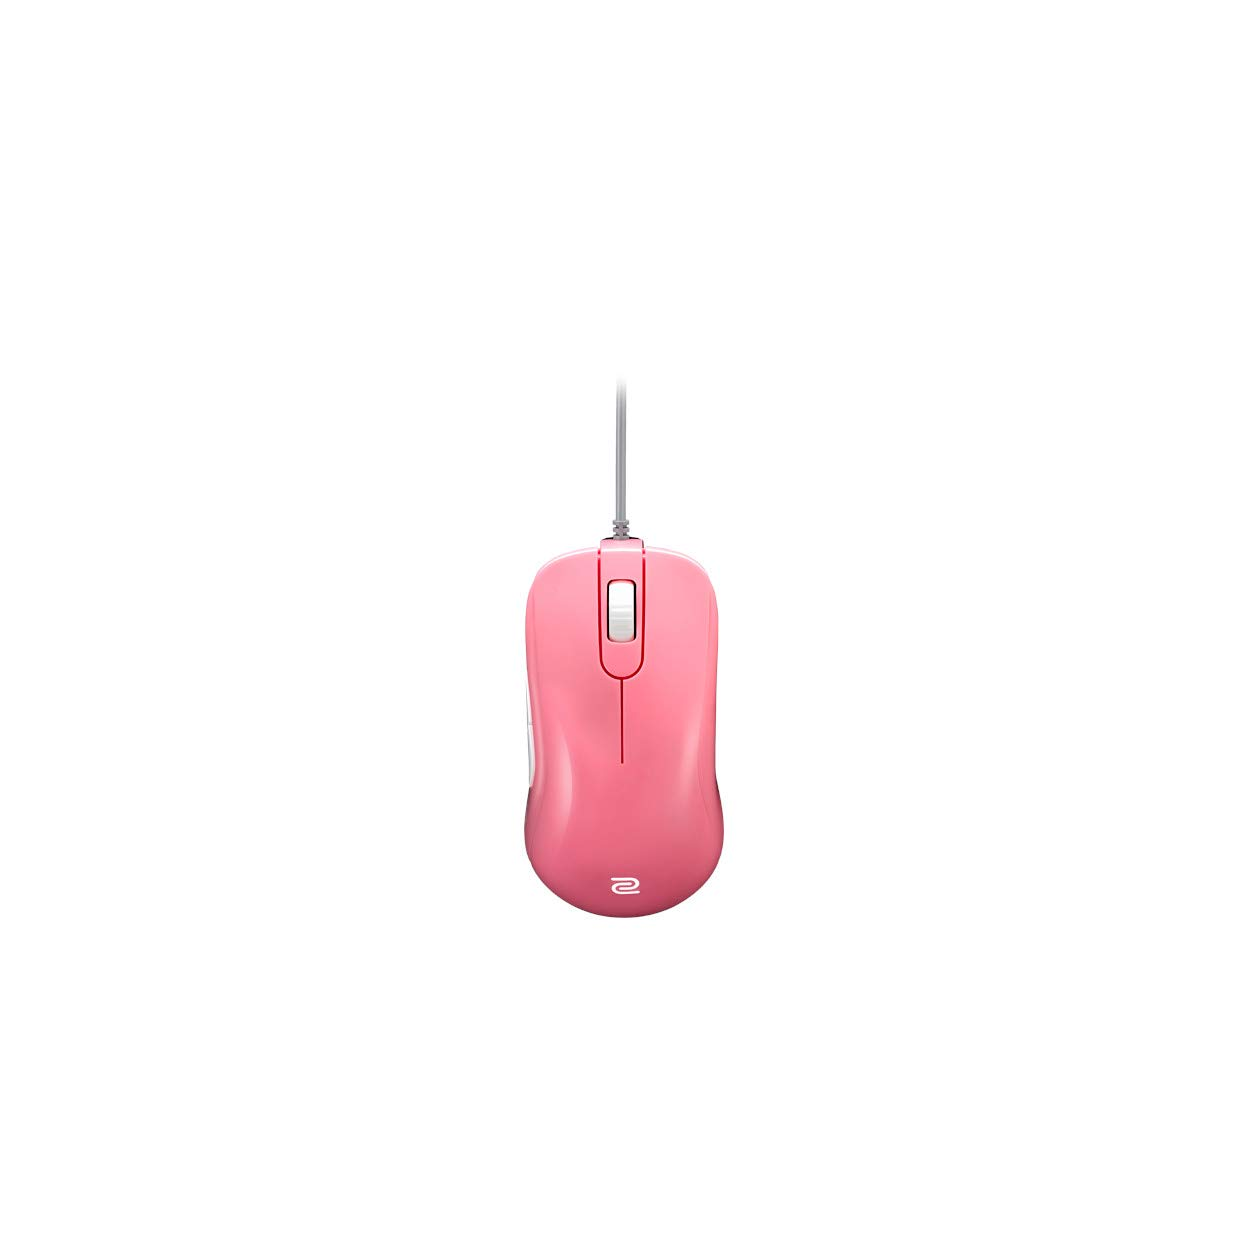 ZOWIE S2 Divina Version Mouse for e-Sports, Pink